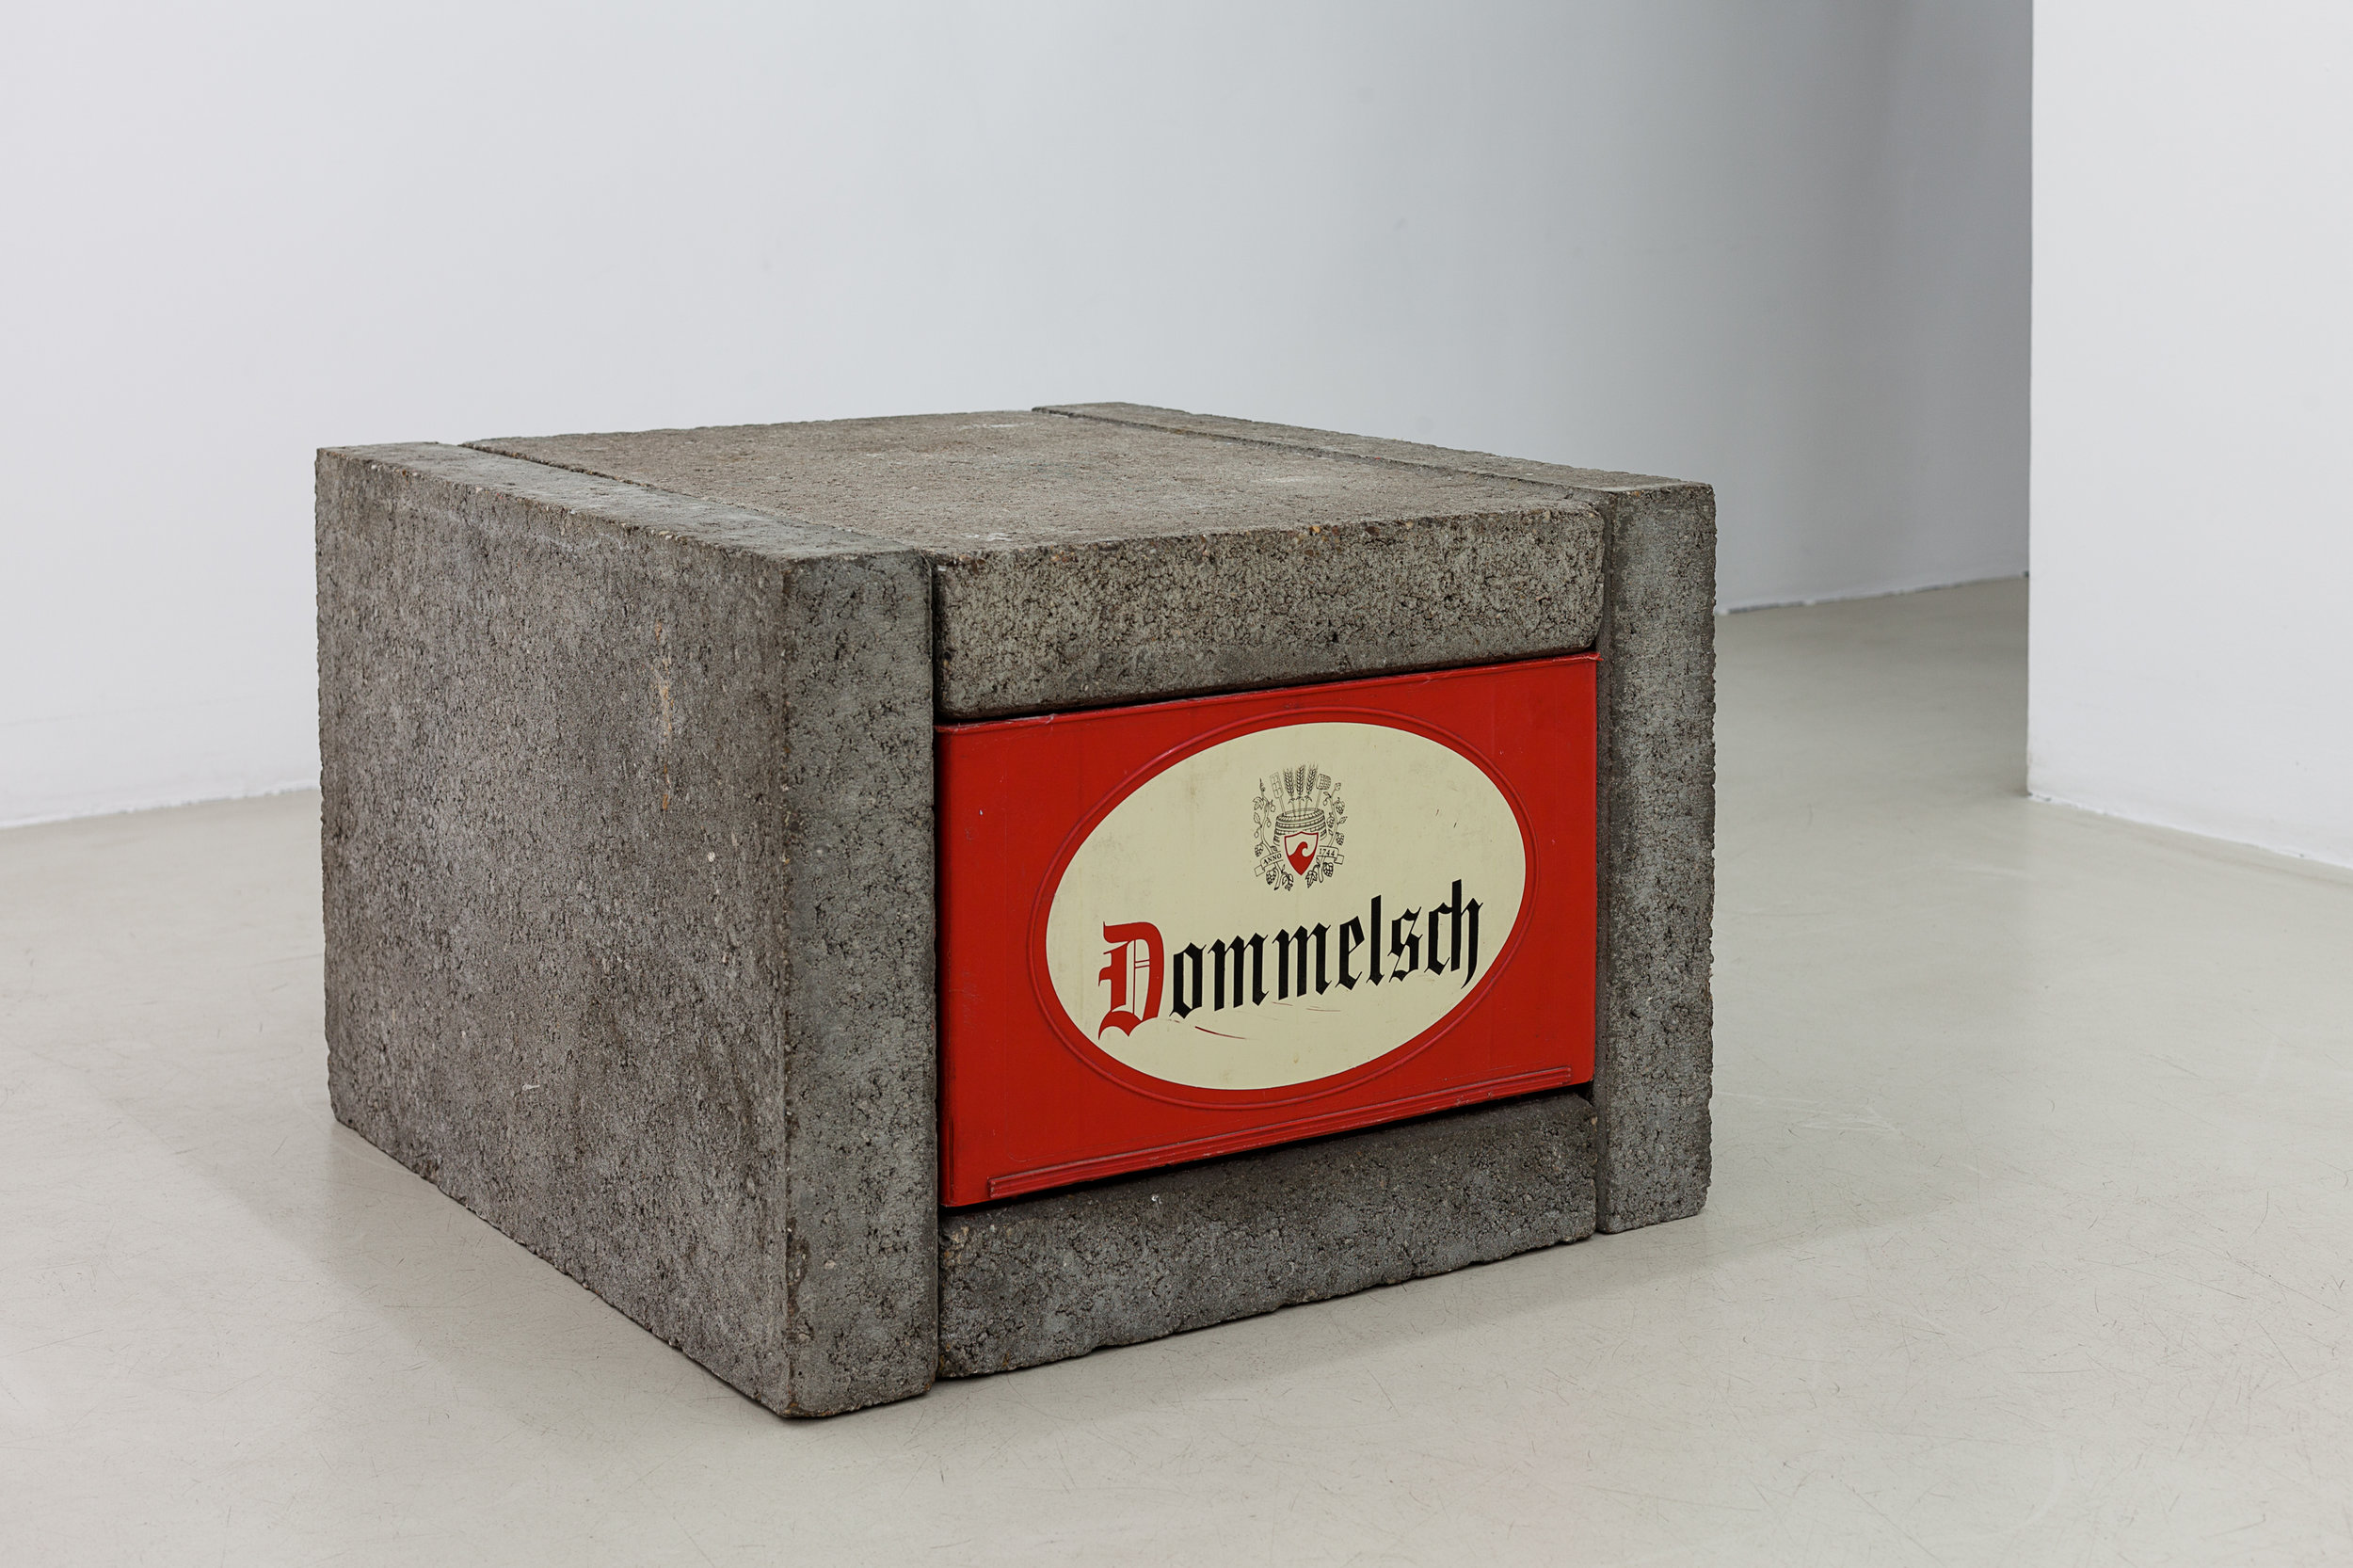 Joep van Lieshout, Untitled (multiple), 1988 concrete slabs, beercrates, beerbottles edition of 15 40 x 56 x 60 cm - 15 3/4 x 22 x 23 5/8 inches